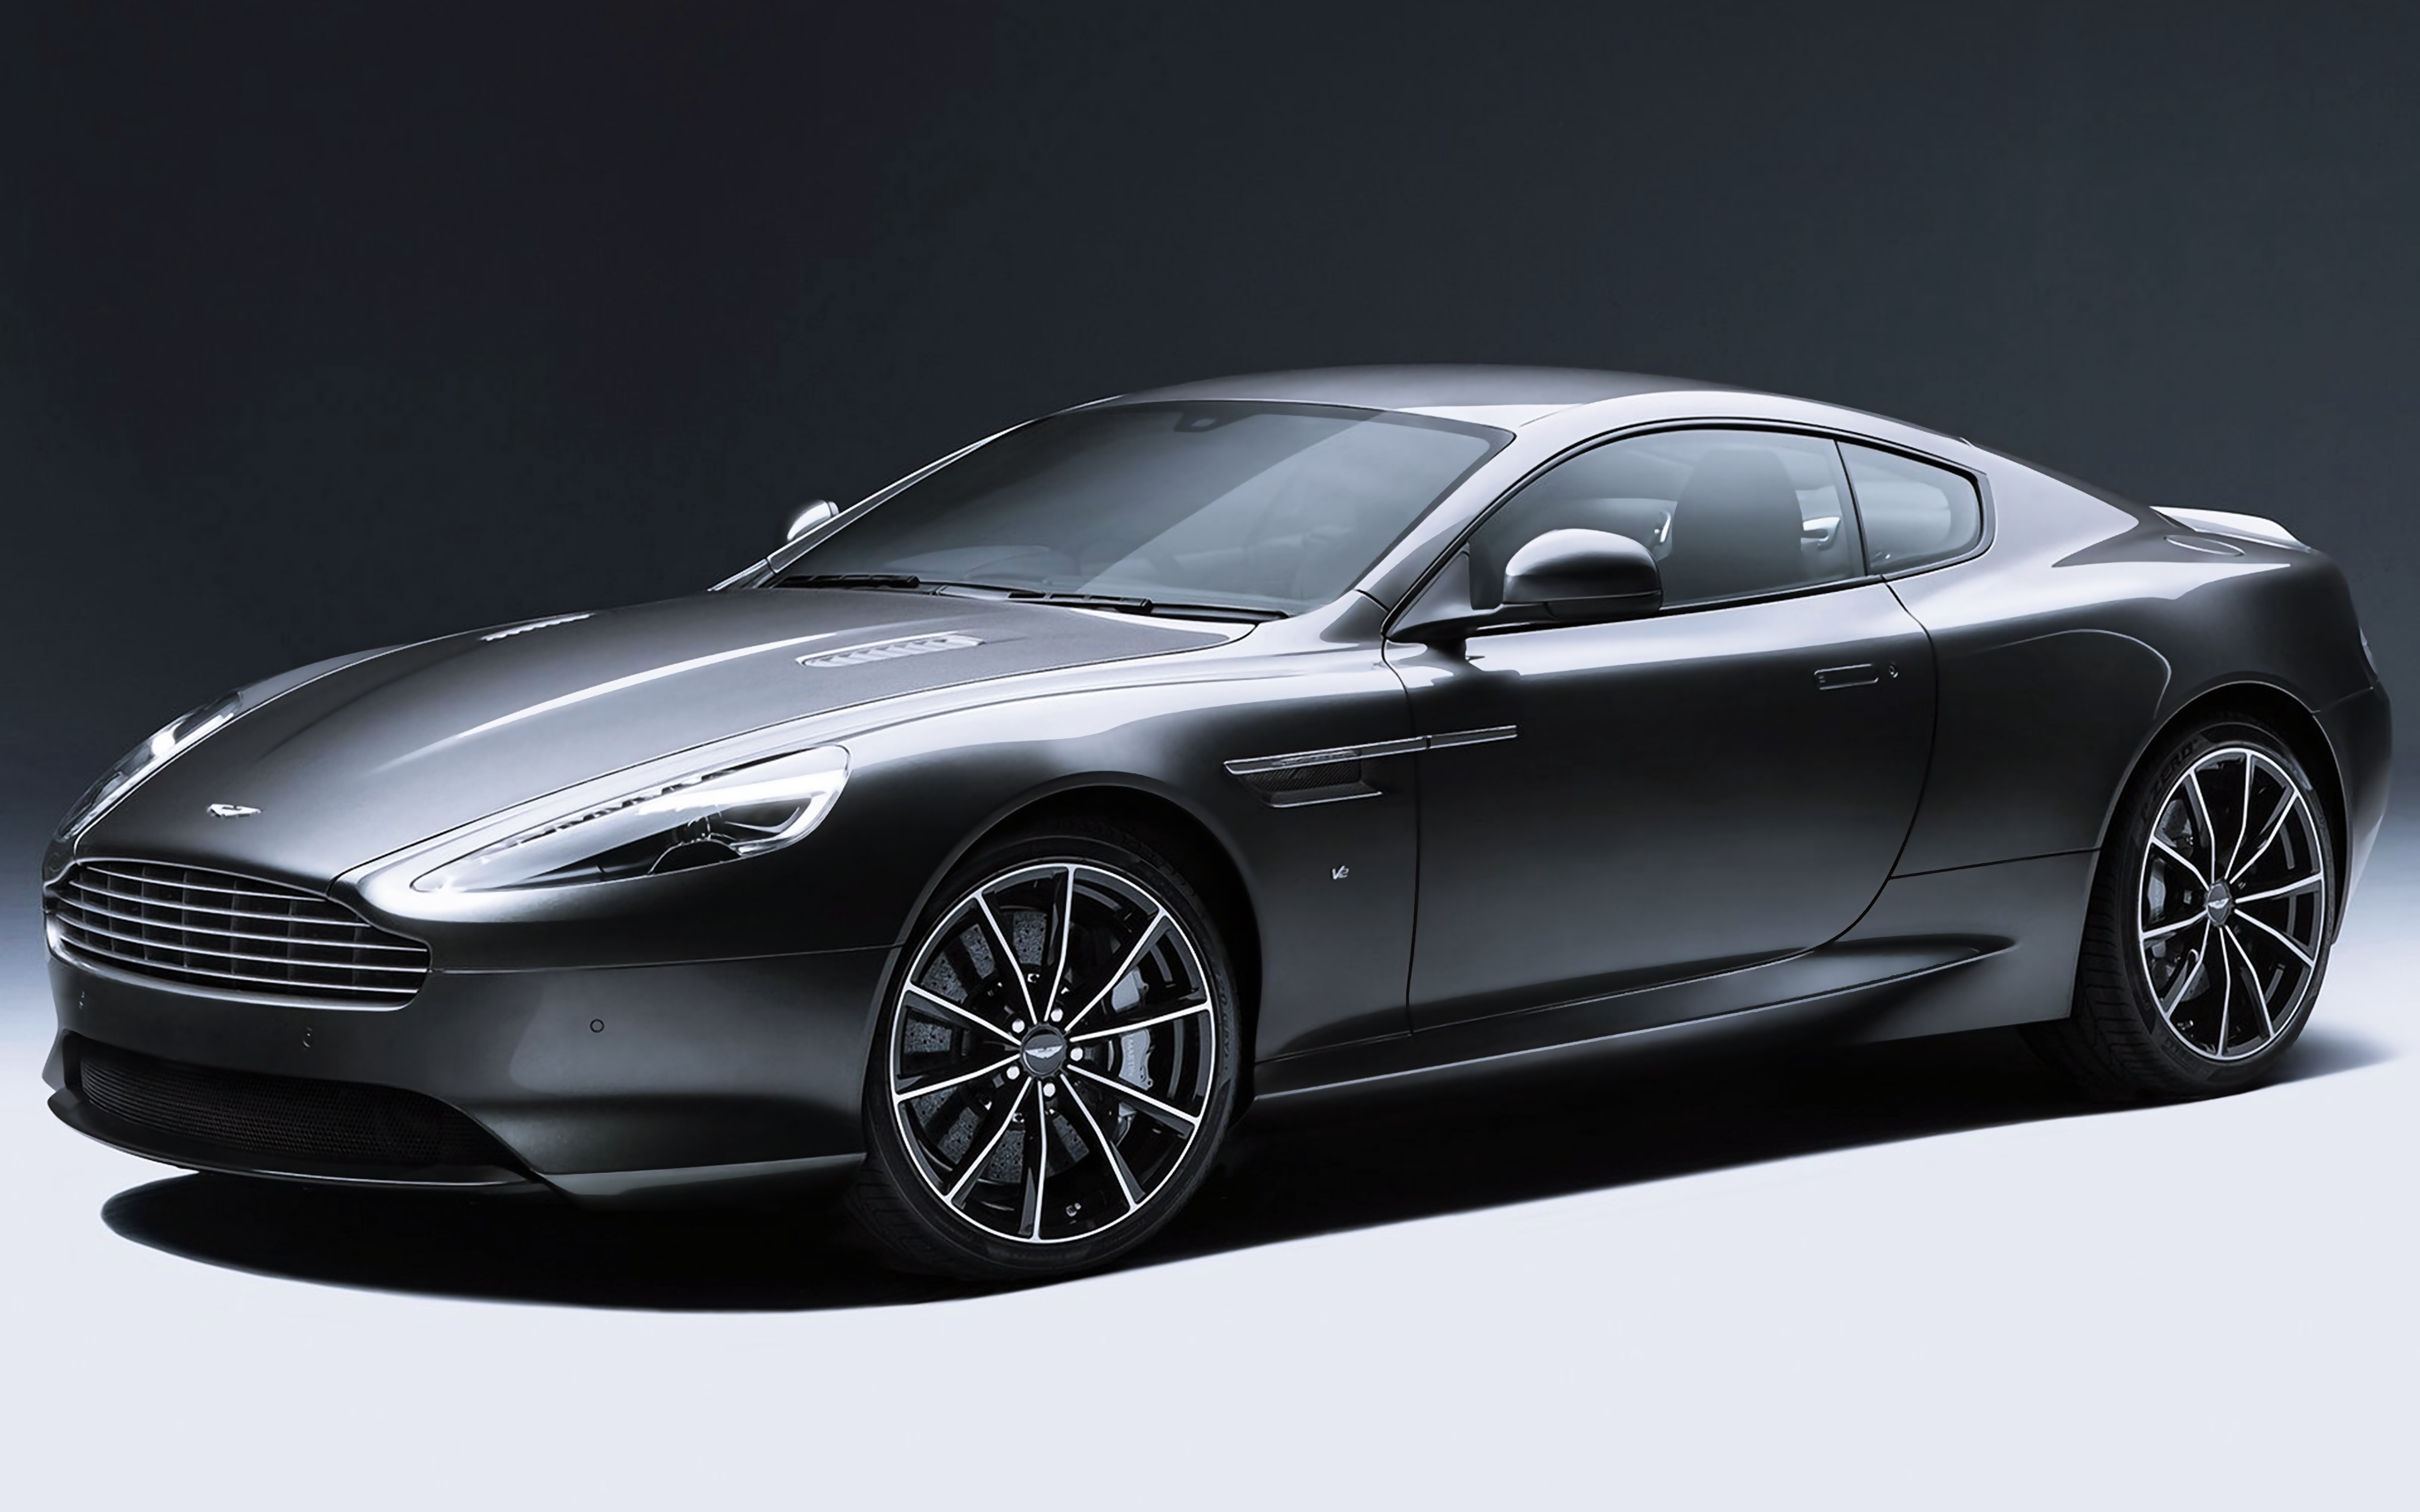 Aston Martin Db9 Wallpapers Pictures Images